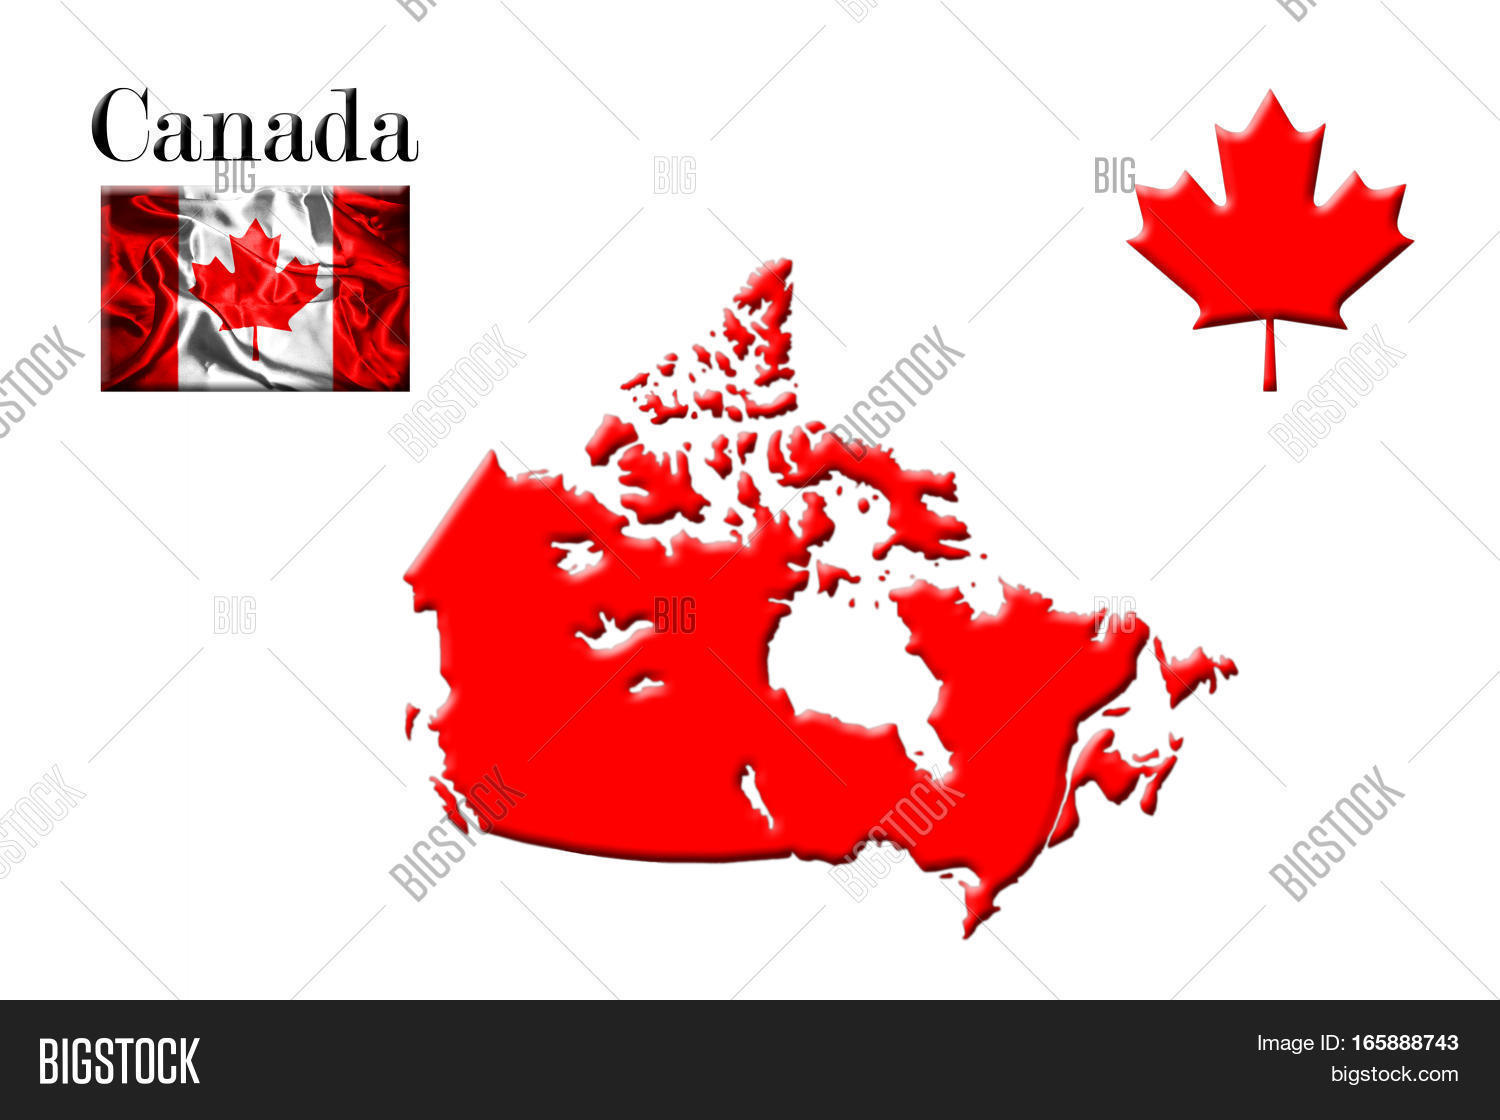 Canada Map Flag.Canadian Map Flag Image Photo Free Trial Bigstock